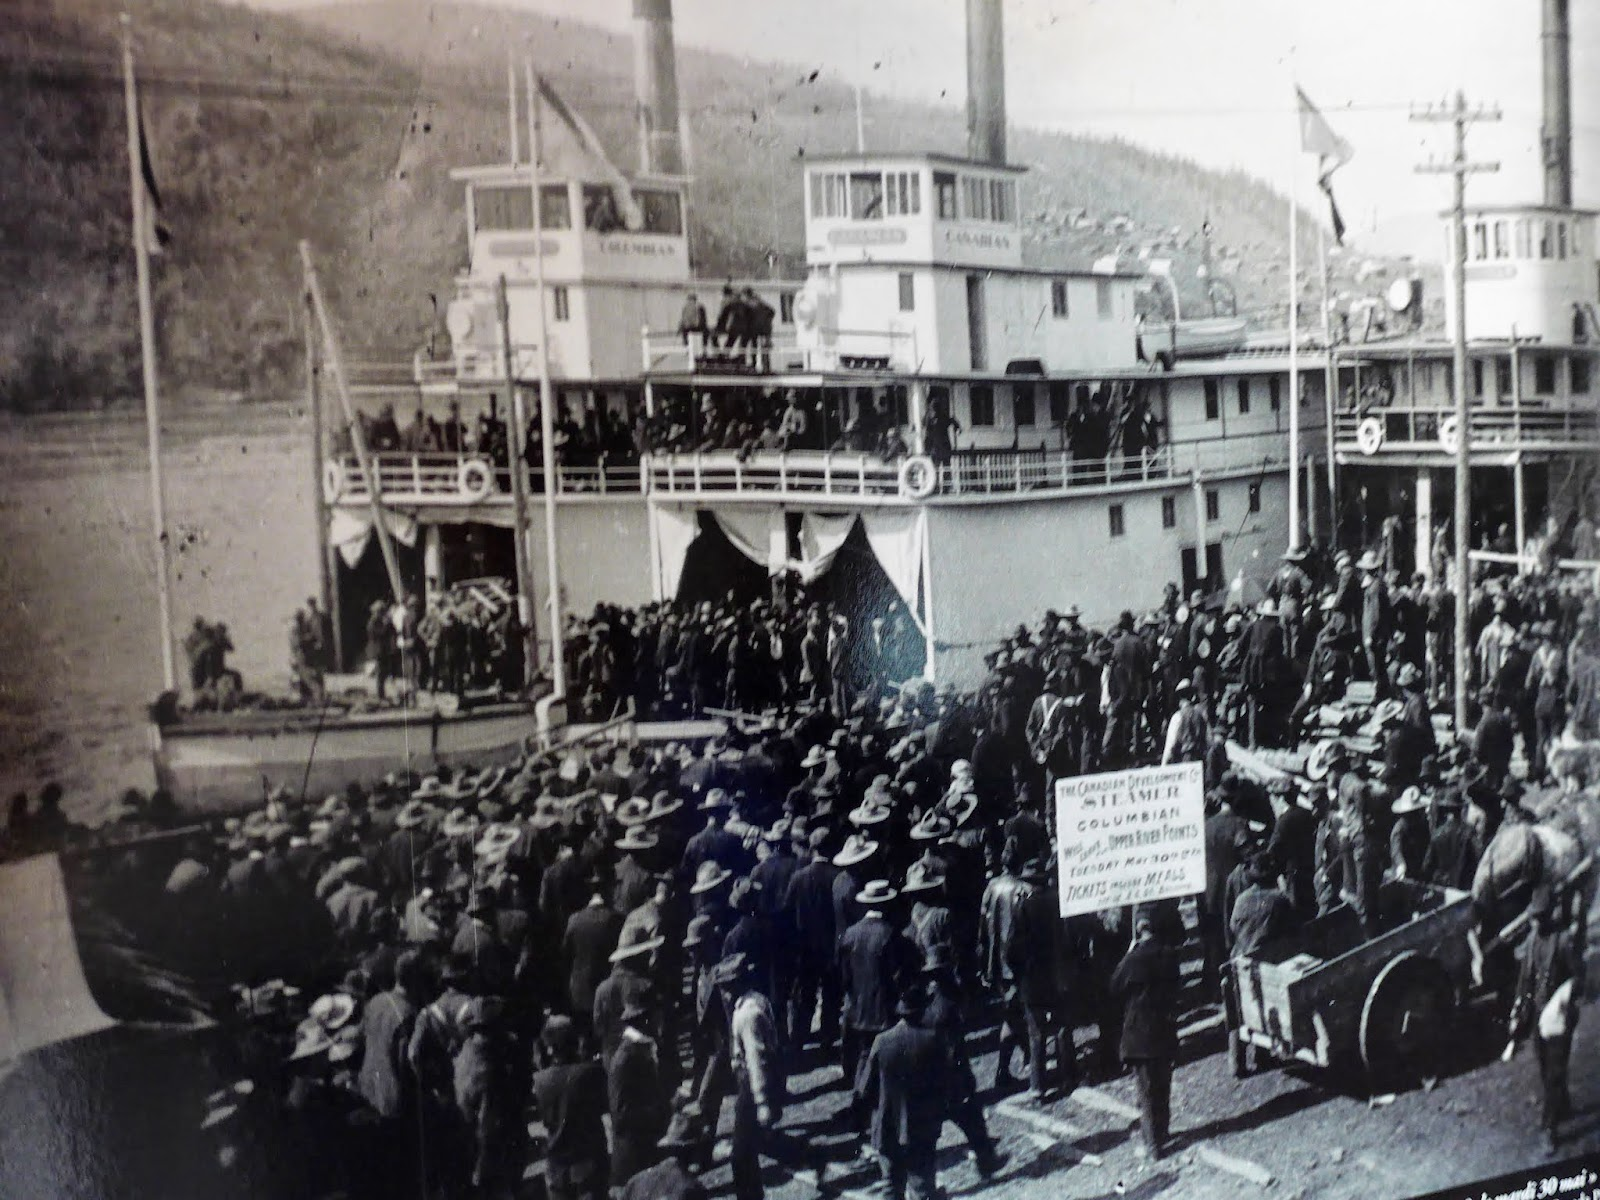 Old picture of people watching the ship arrive in the late 1800's